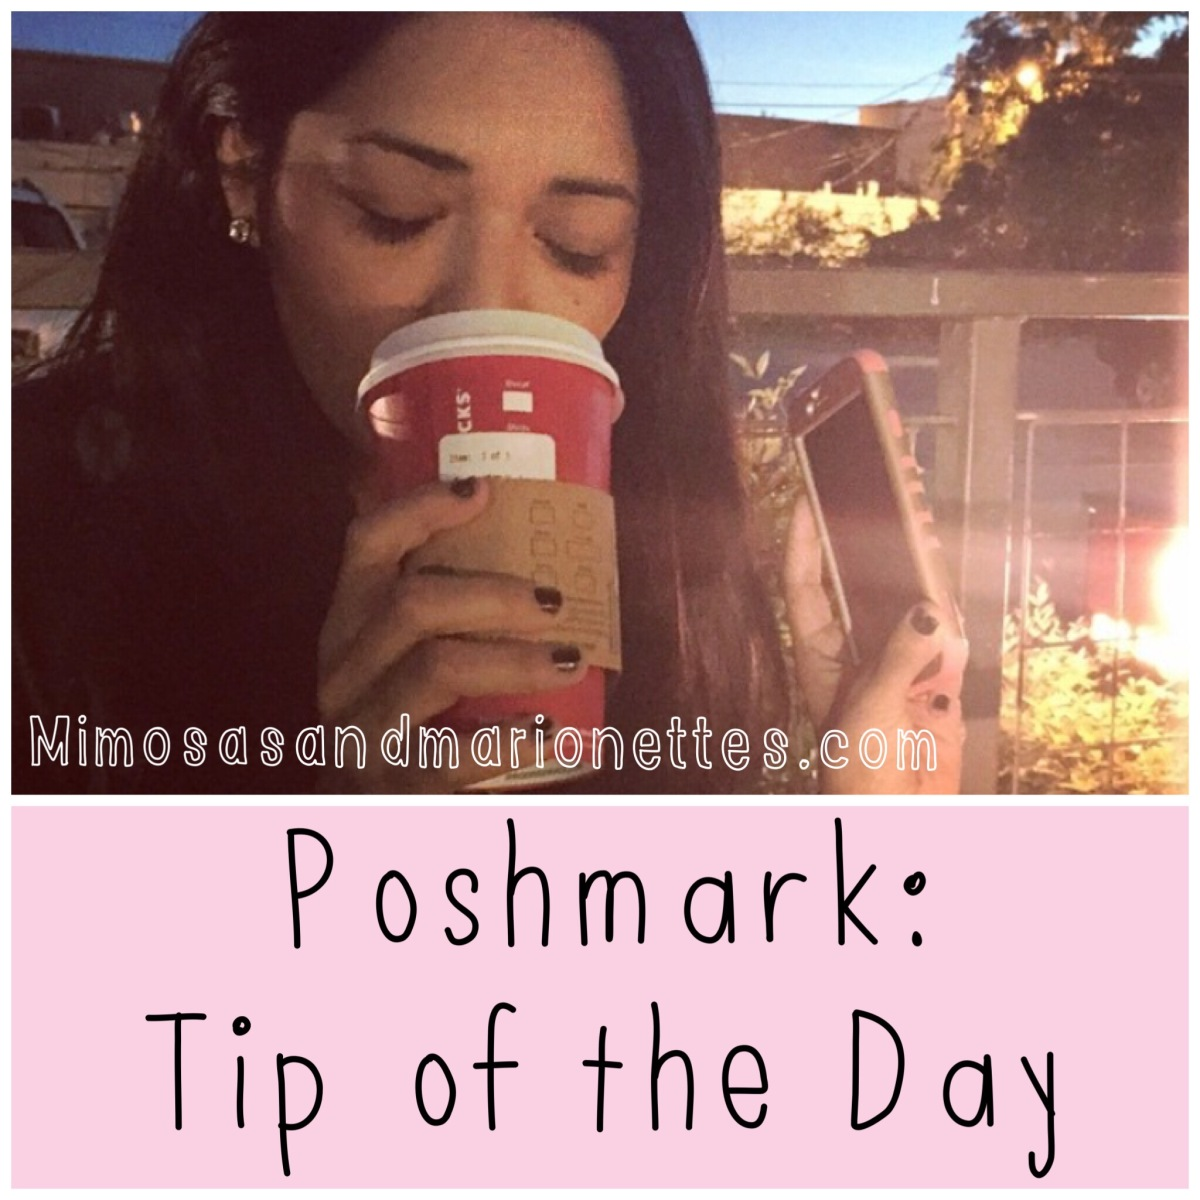 Poshmark - Tip of the Day 5/30/17